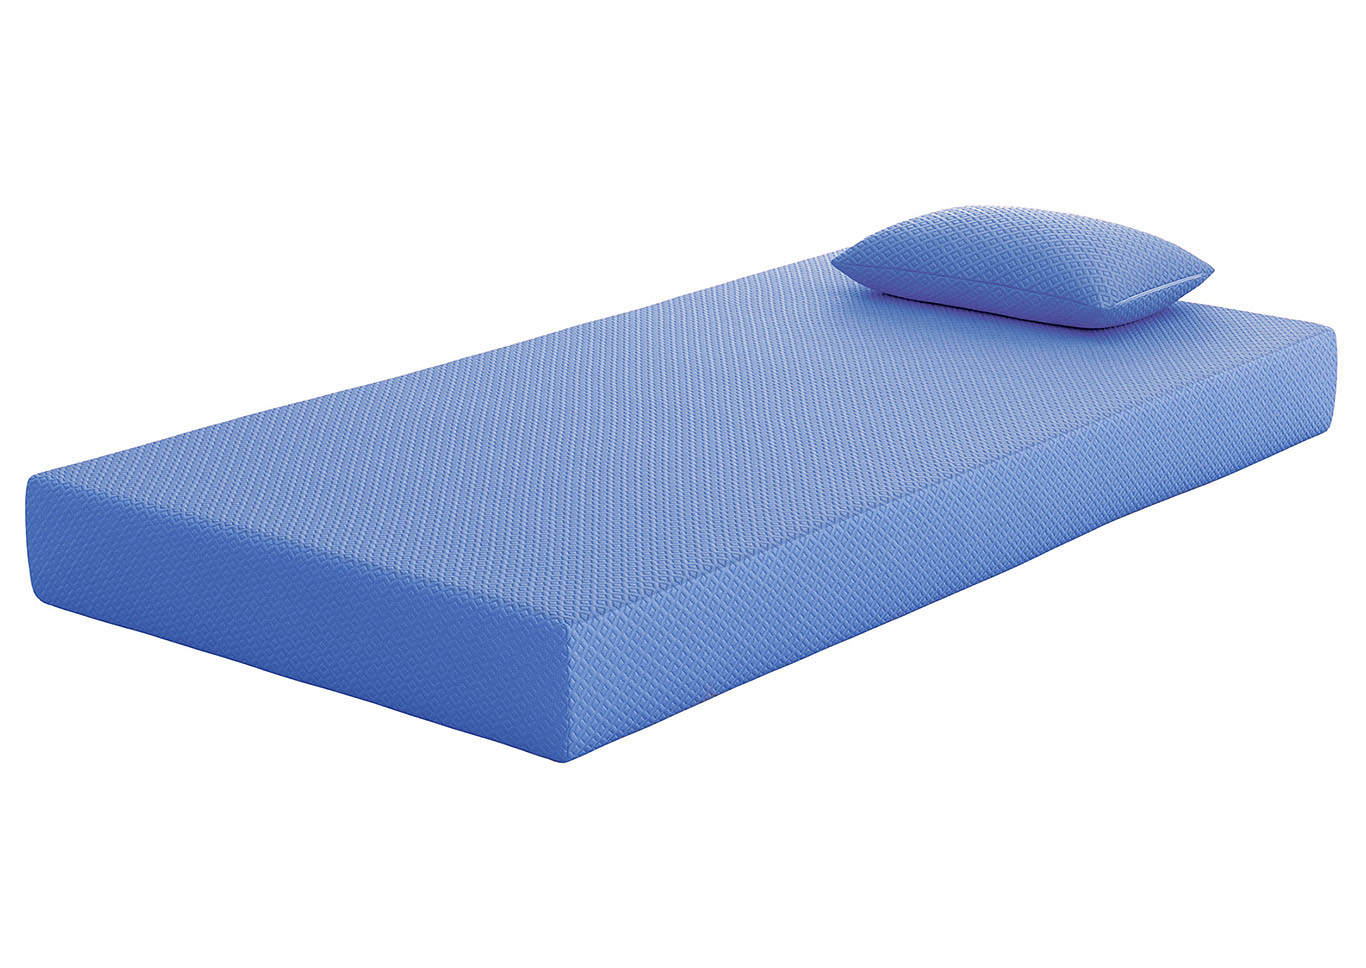 iKidz Blue Twin Mattress & Pillow,Sierra Sleep by Ashley